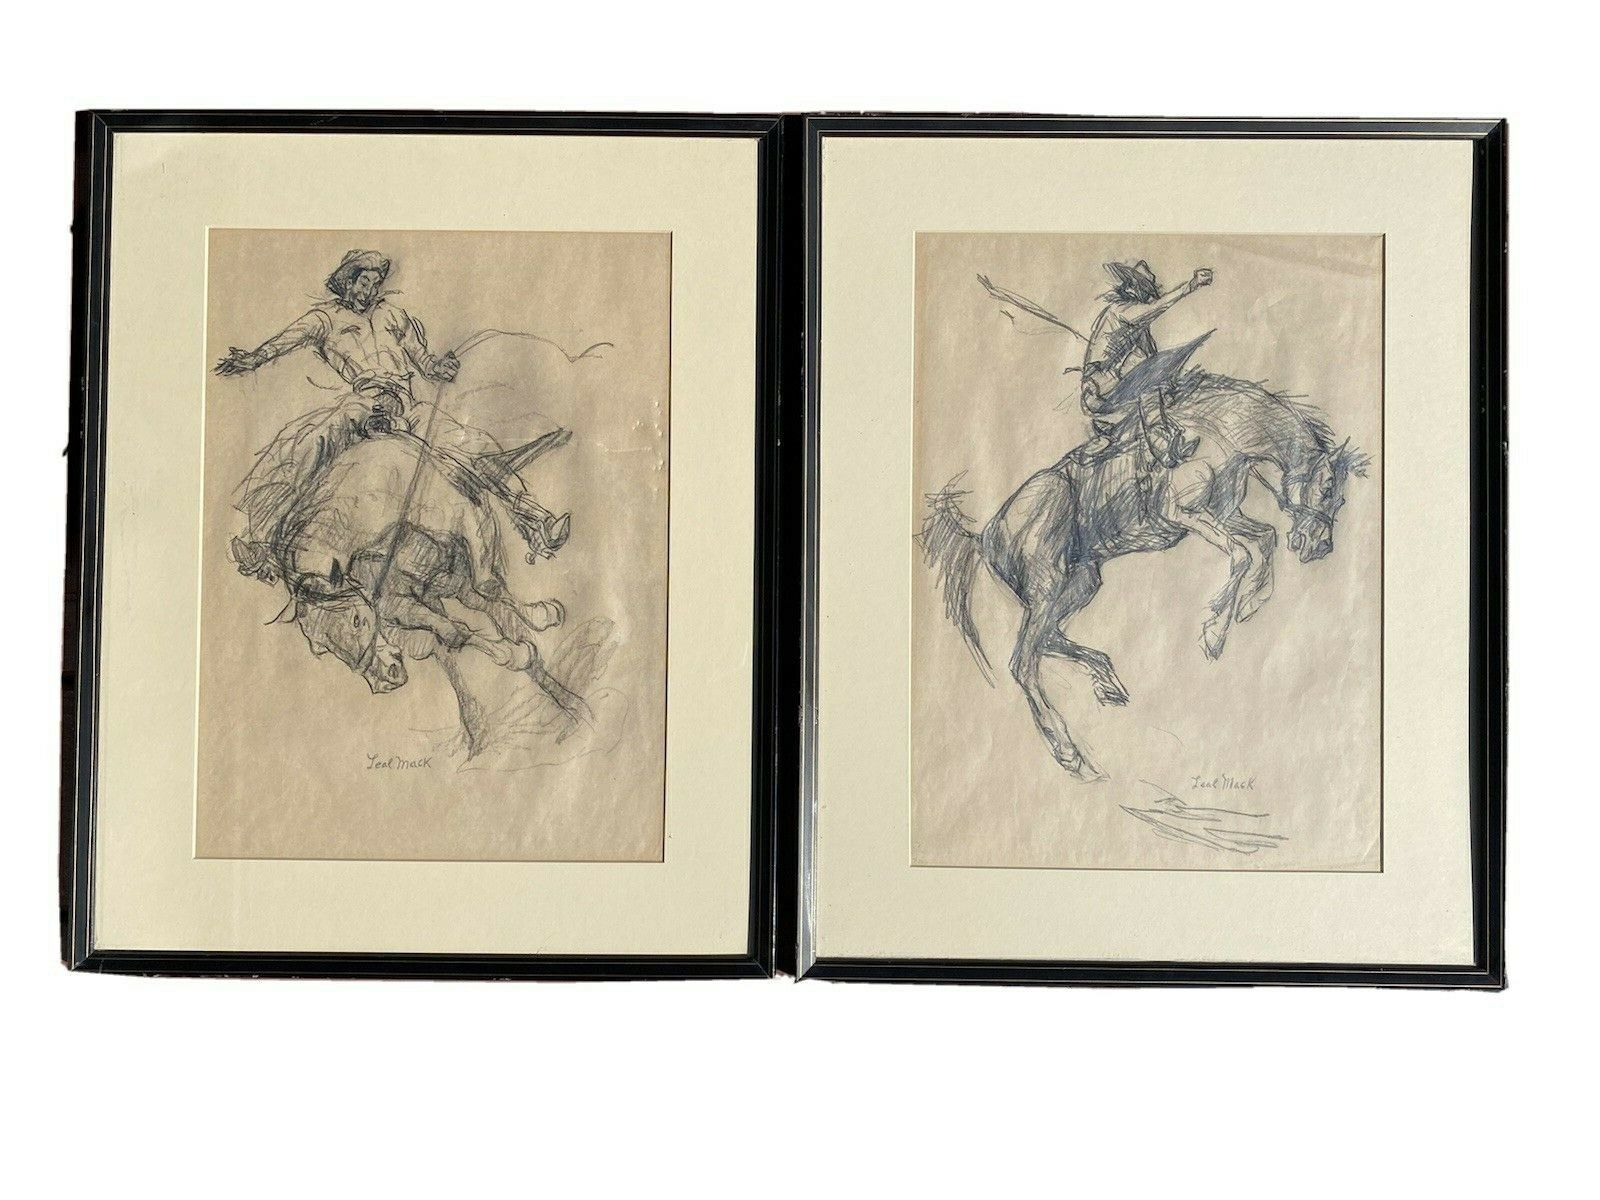 """Pair Leal Mack American (1892-1962) Charcoal Bucking Bronco Western Drawings. Leal Mack was a painter and a magazine illustrator born in Titusville, Pennsylvania. He worked for The Saturday Evening Post, Harper's, Country Gentleman and Youth's Companion. He relocated to Taos, New Mexico in 1944 where his works centered on Western Cowboy Themes. These two signed charcoal drawings are in good condition other than the one on the left has some indentation on the paper. The framed measurement is 16.75"""" x 20.75"""" each ~ $165"""